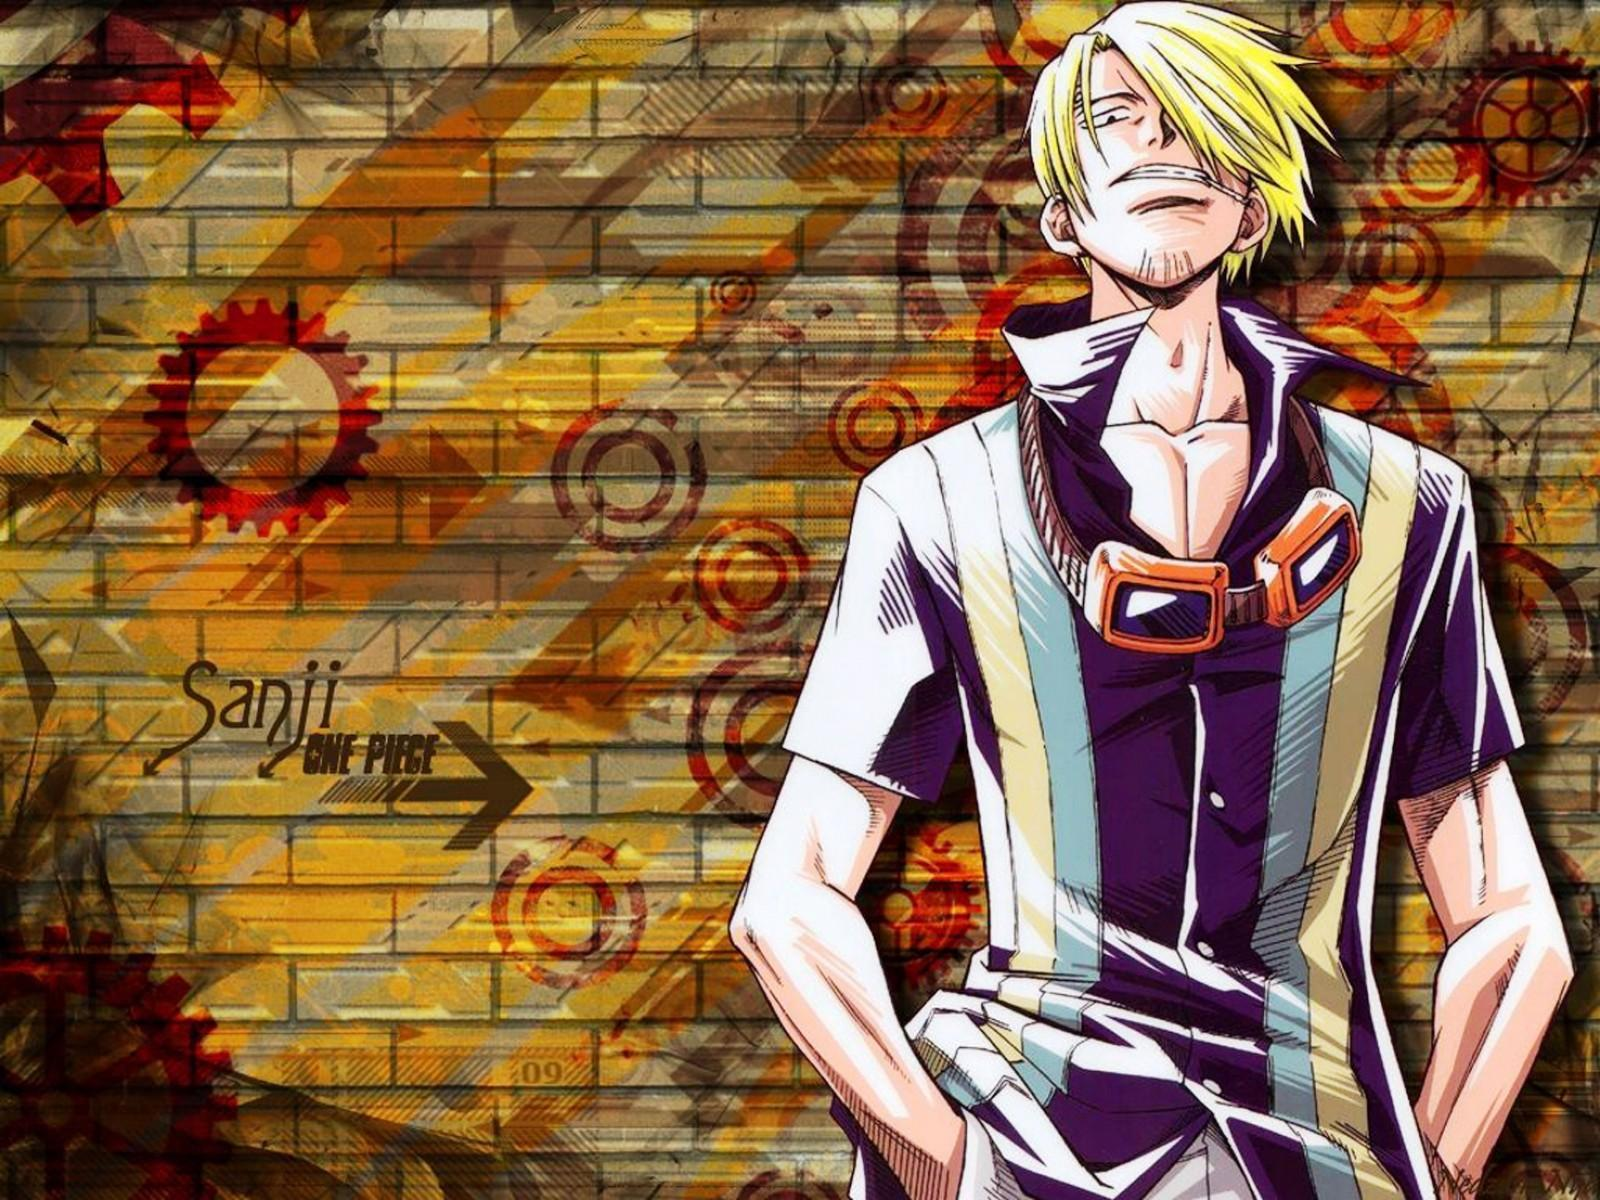 Art One Piece Wallpaper Hd For Android Apk Download